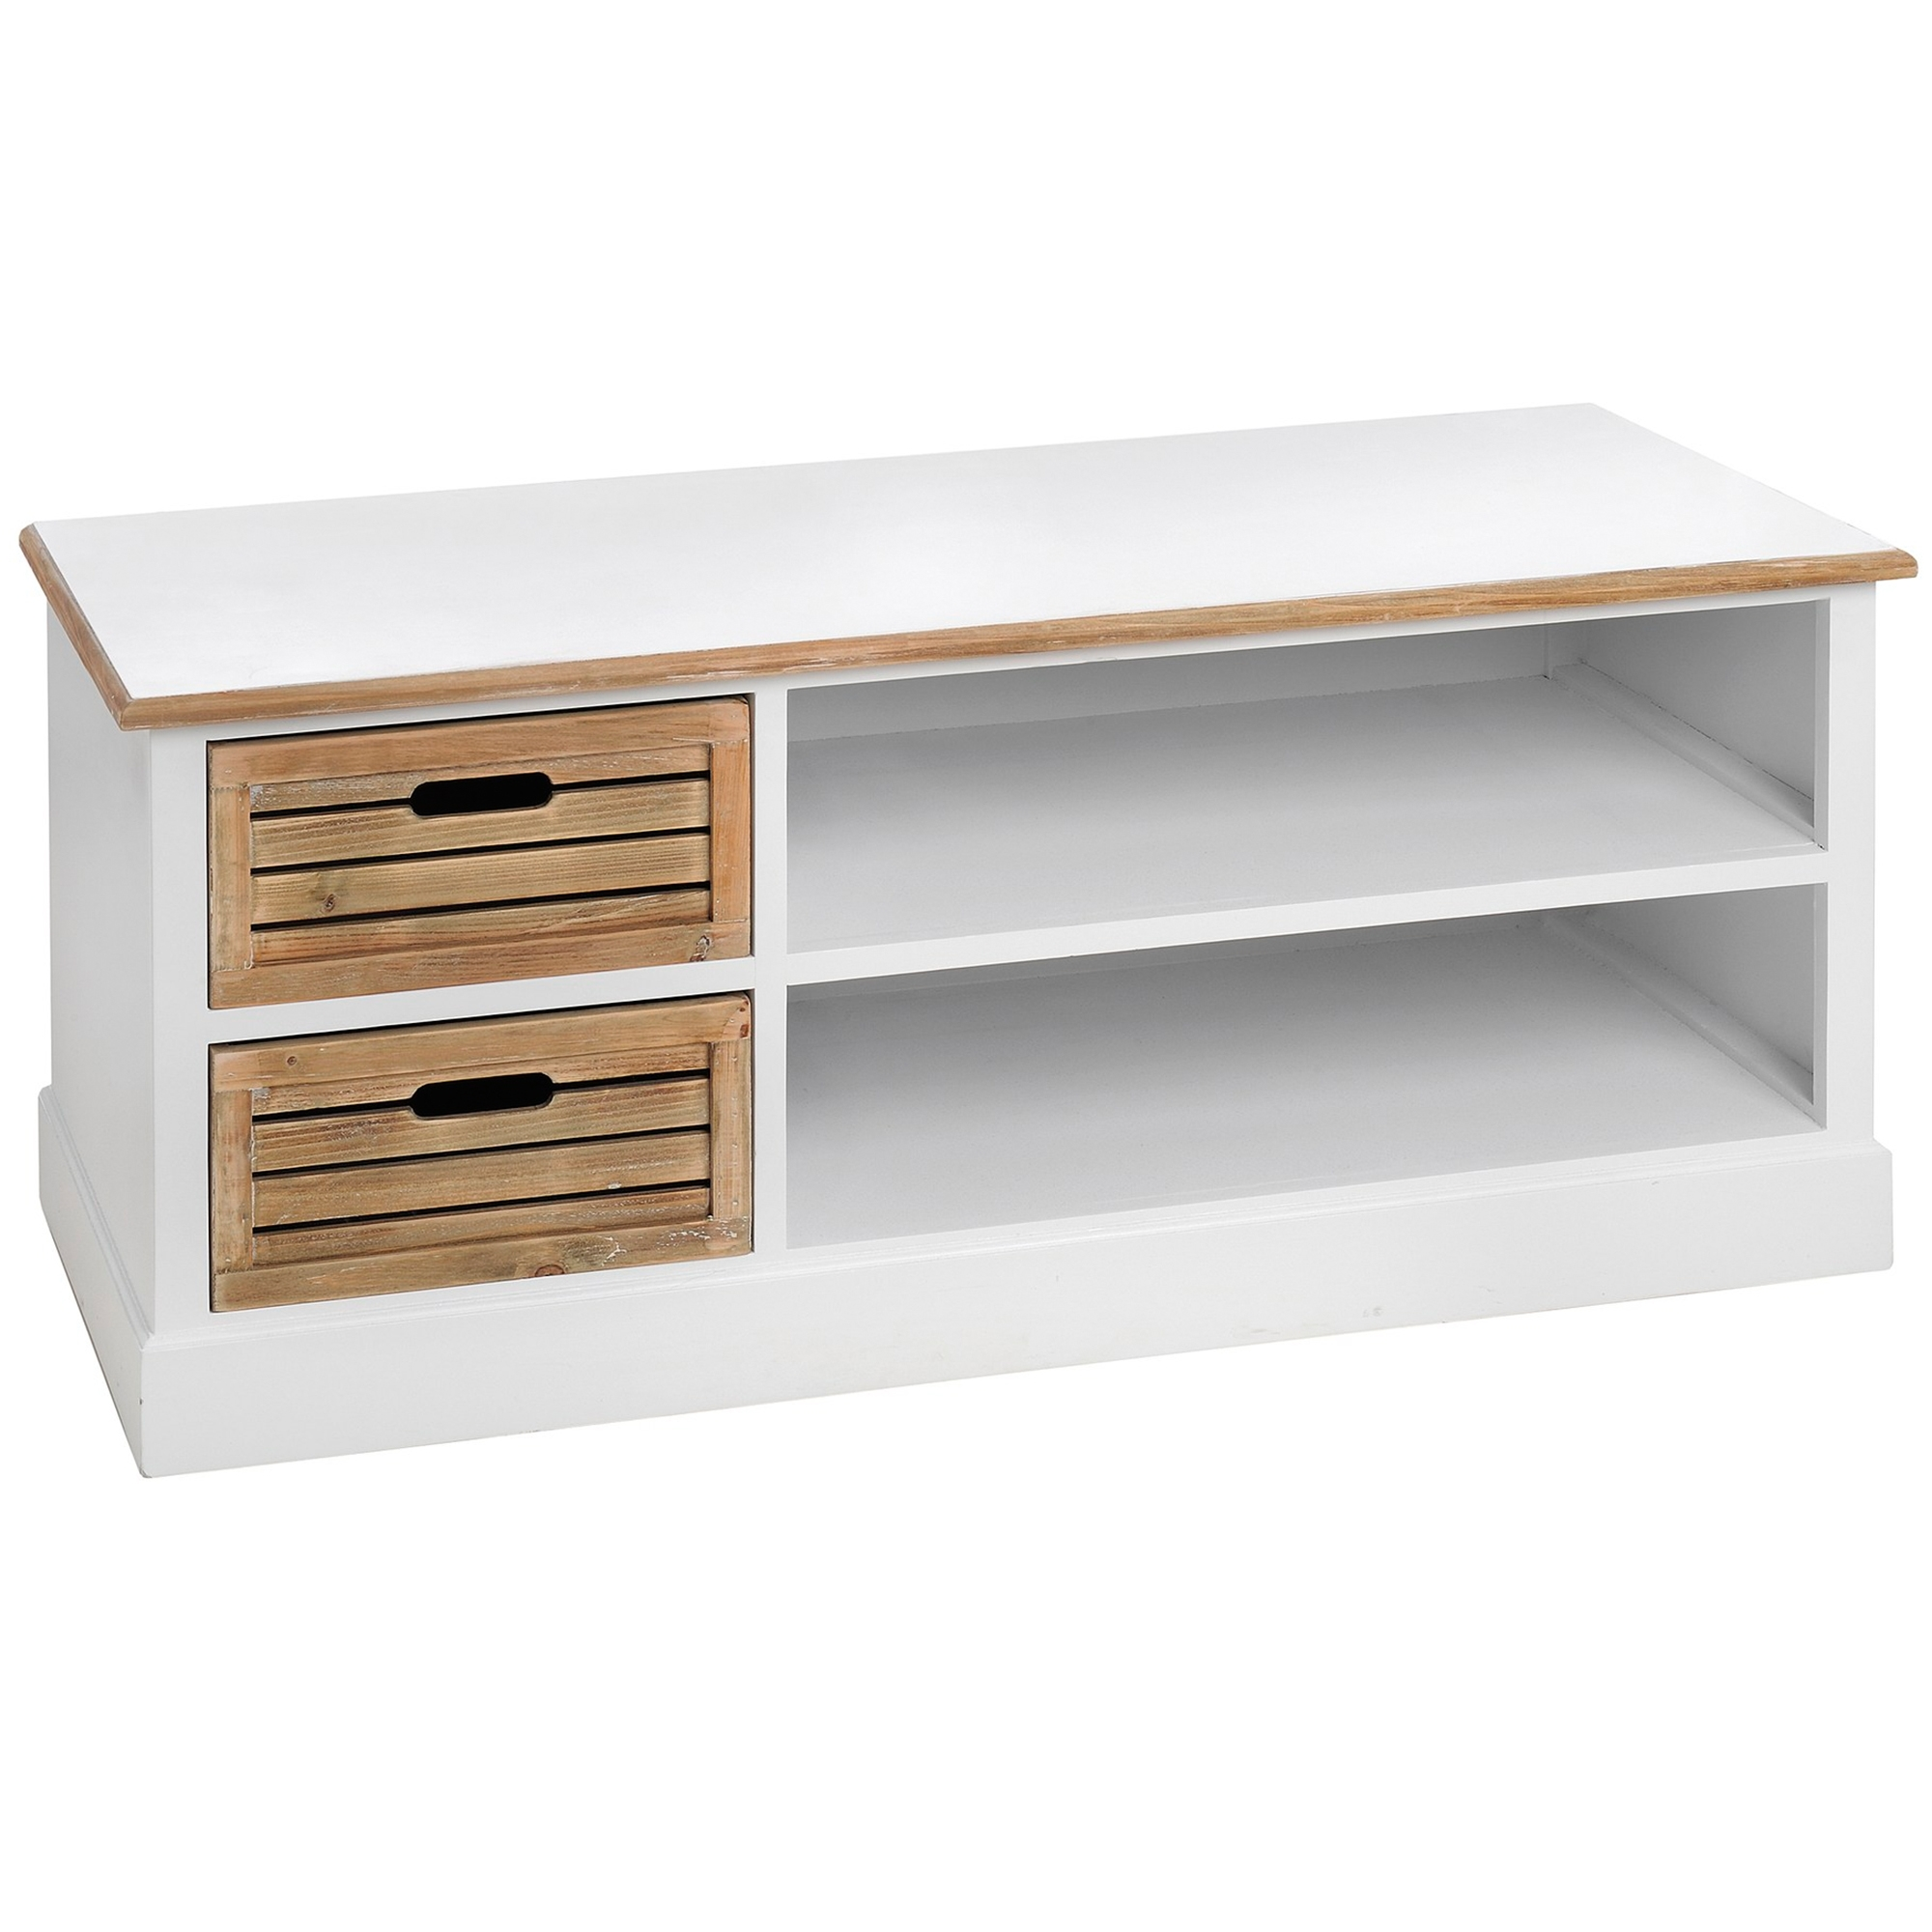 shabby chic tv cabinet online from homesdirect365 now. Black Bedroom Furniture Sets. Home Design Ideas